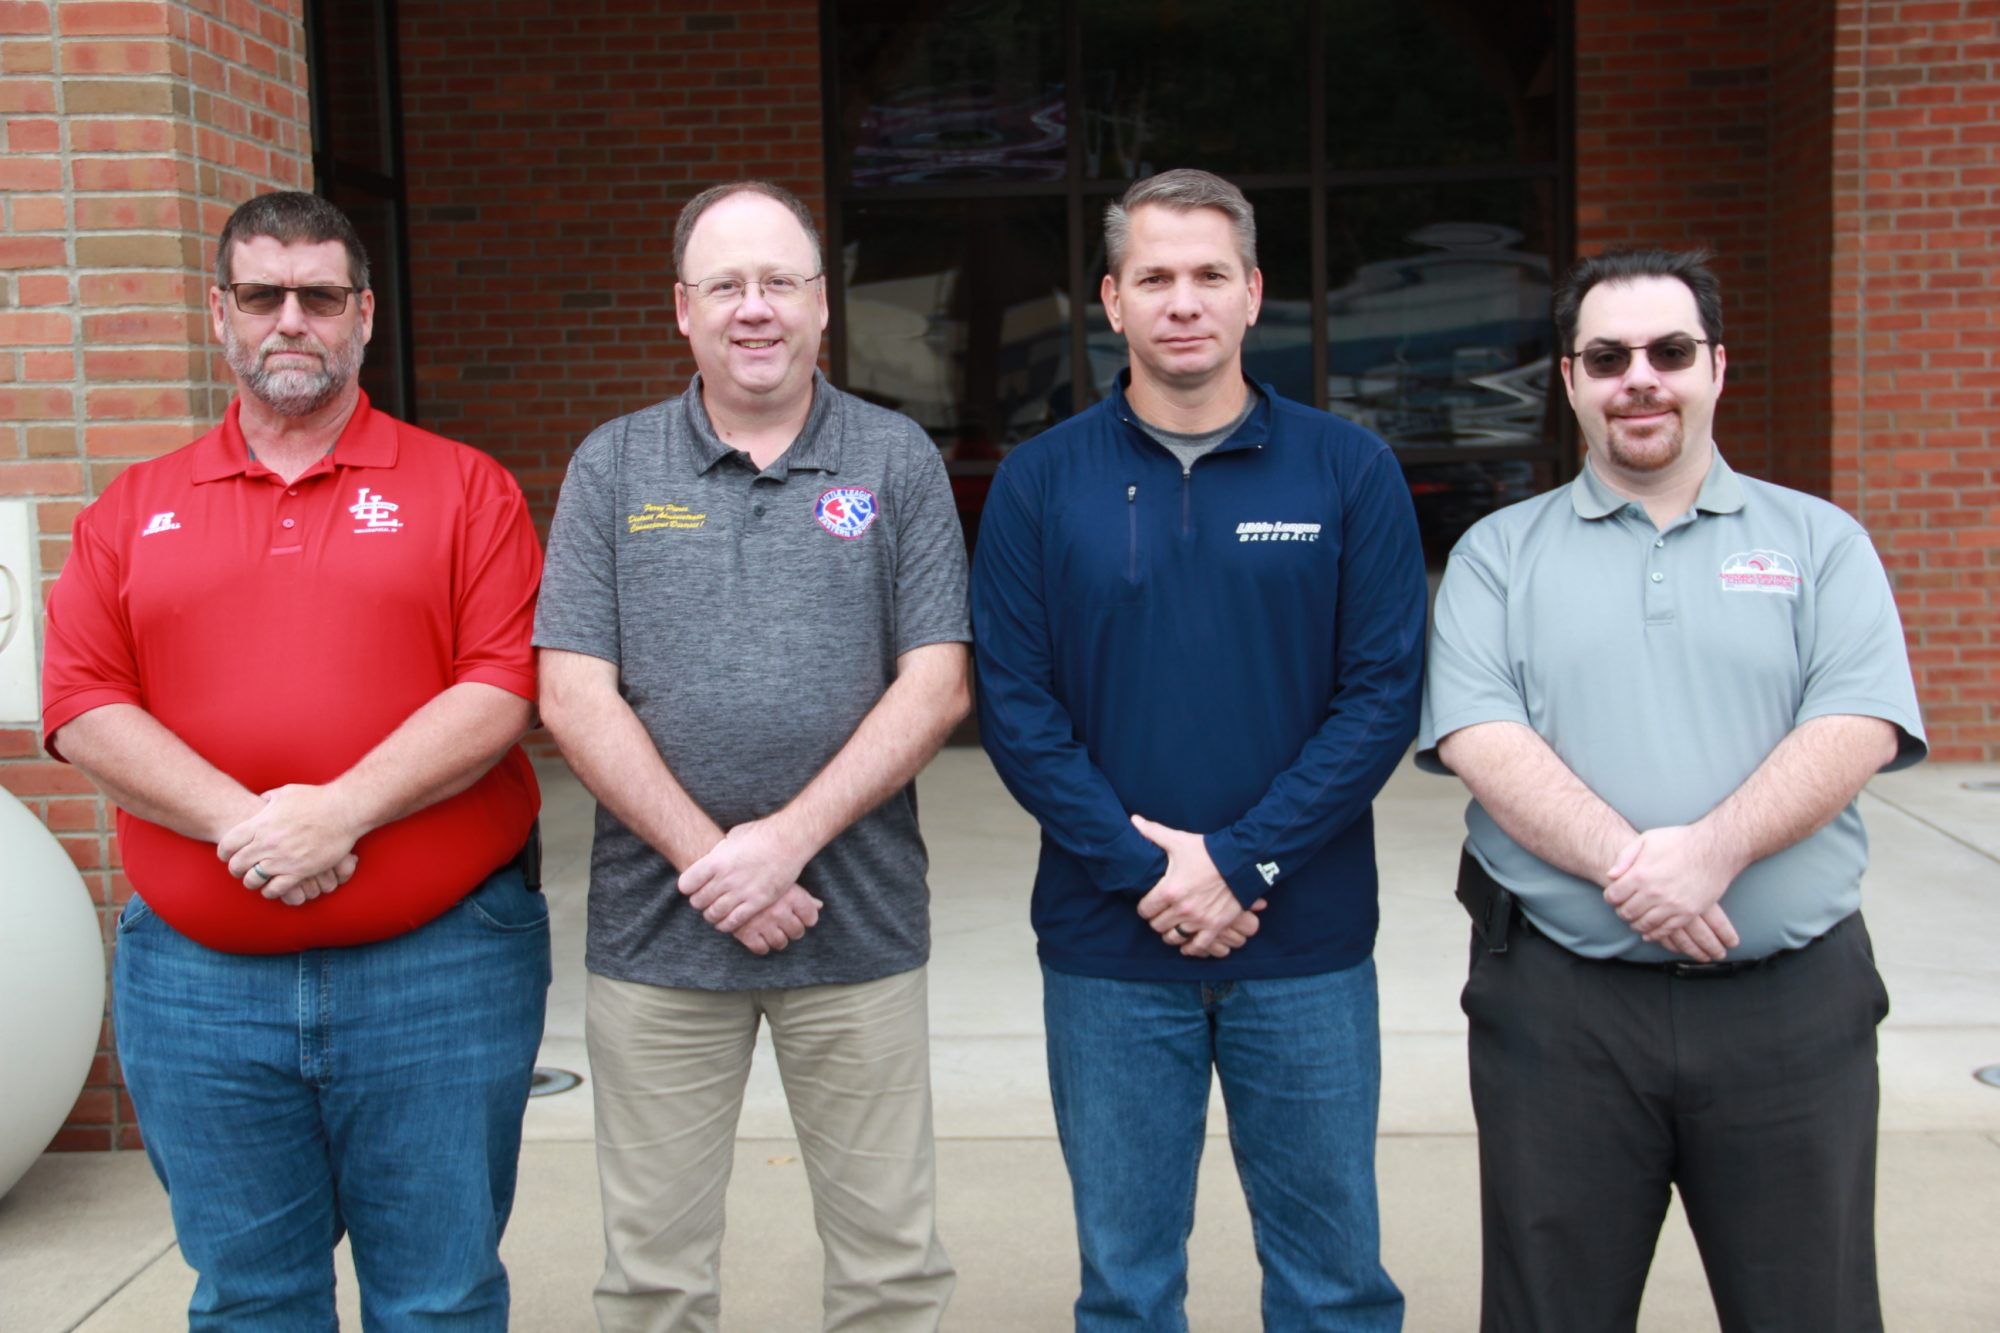 New Advisory Board Members (L to R): Derek Lisby, Perry Pierce, Roman Jones, and Carl Thompson